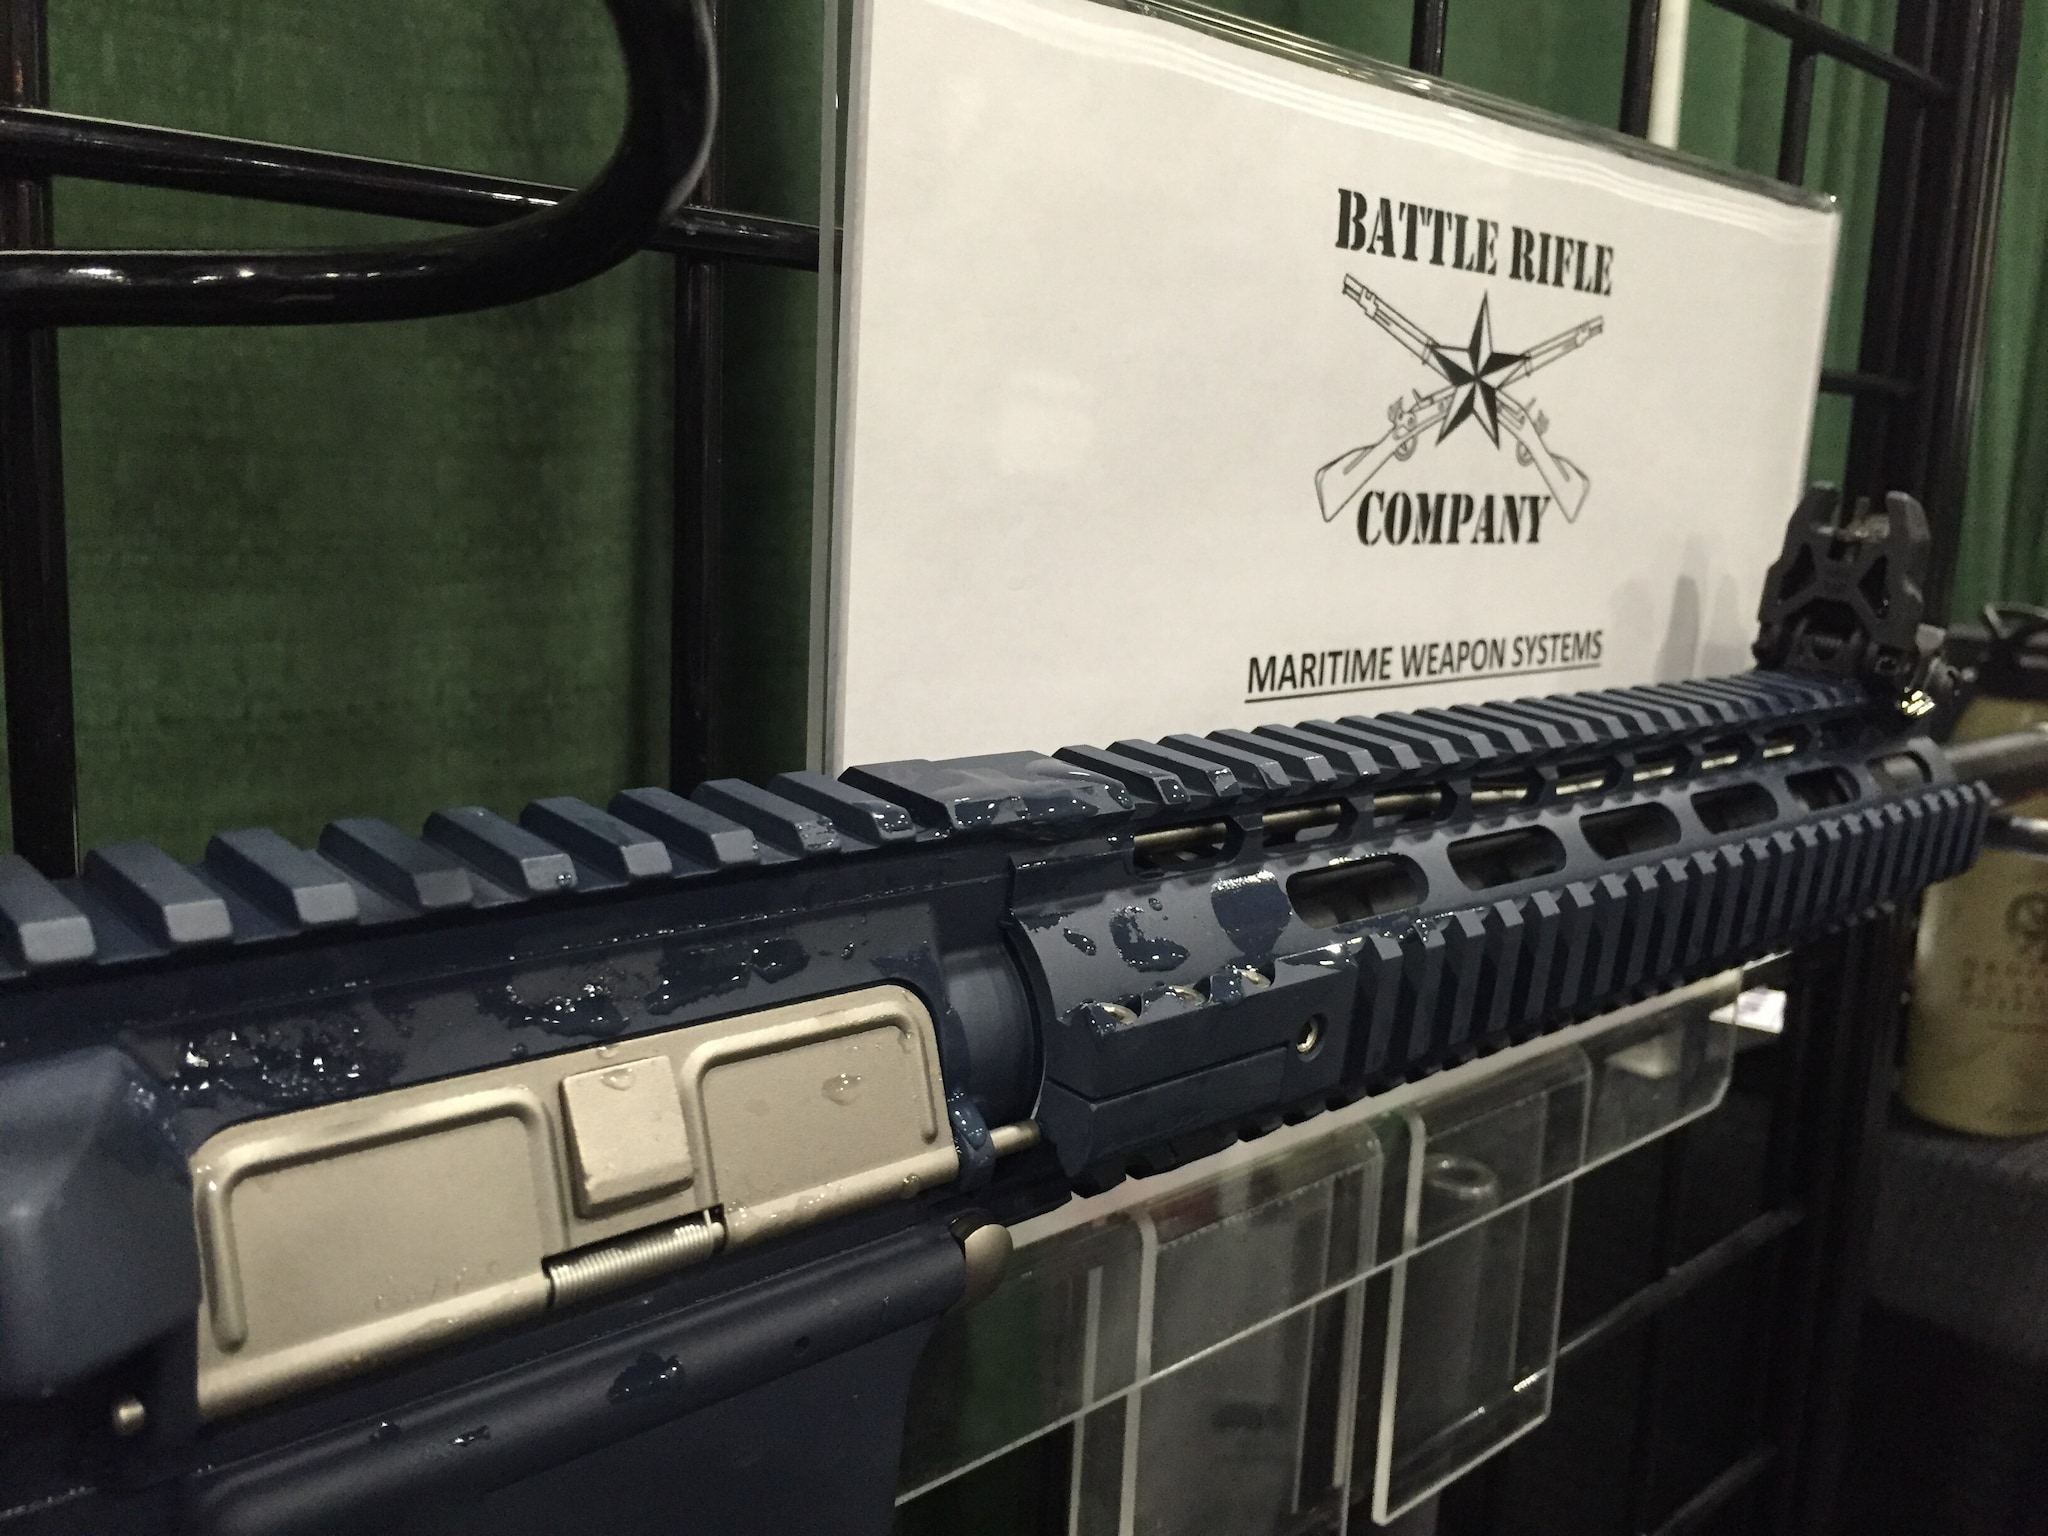 Battle Rifle Company's Cutlass in 5.56, dripping wet! This maritime security-purpose rifle with NP3-coated parts spent 30 days soaking in Galveston Bay. No rust.